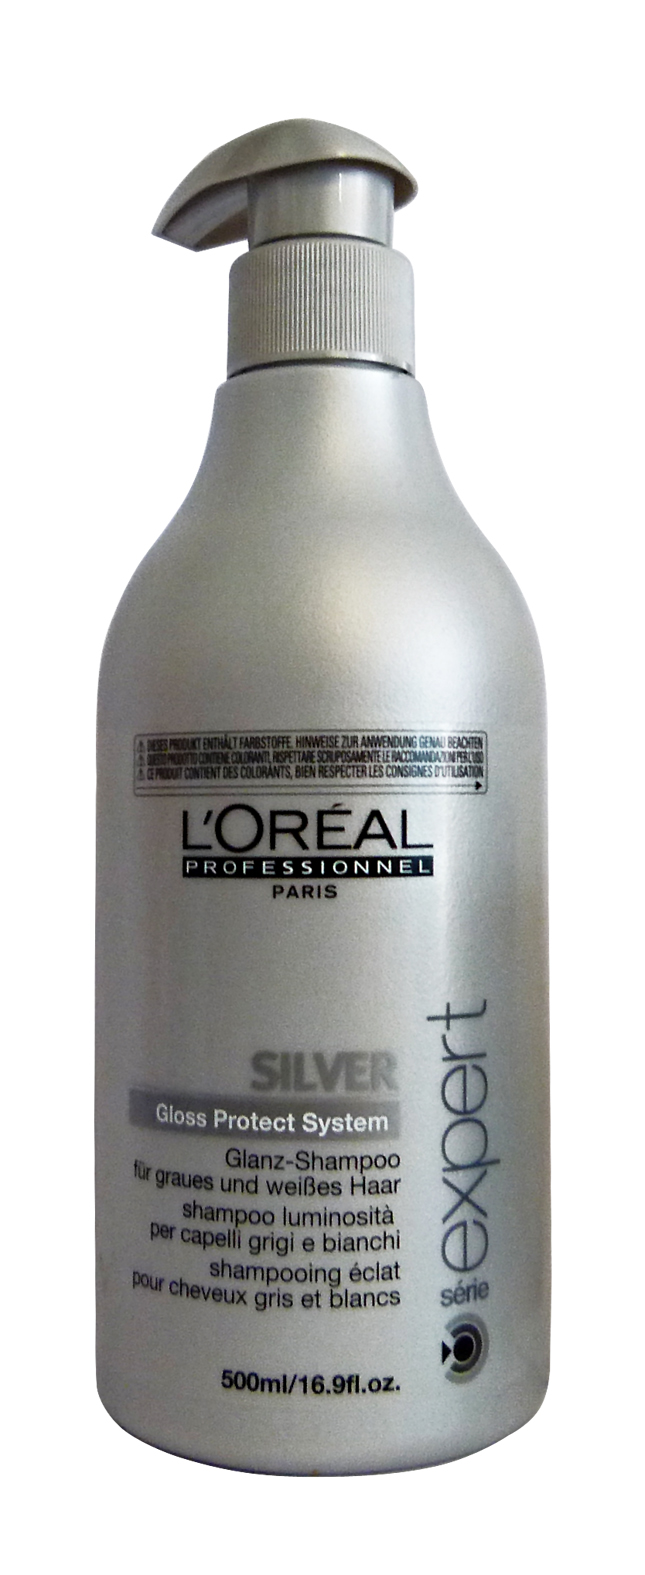 L OREAL Professional Shampoo Silver Gray-White 500 Ml Hair Products ... f486b765c7a3